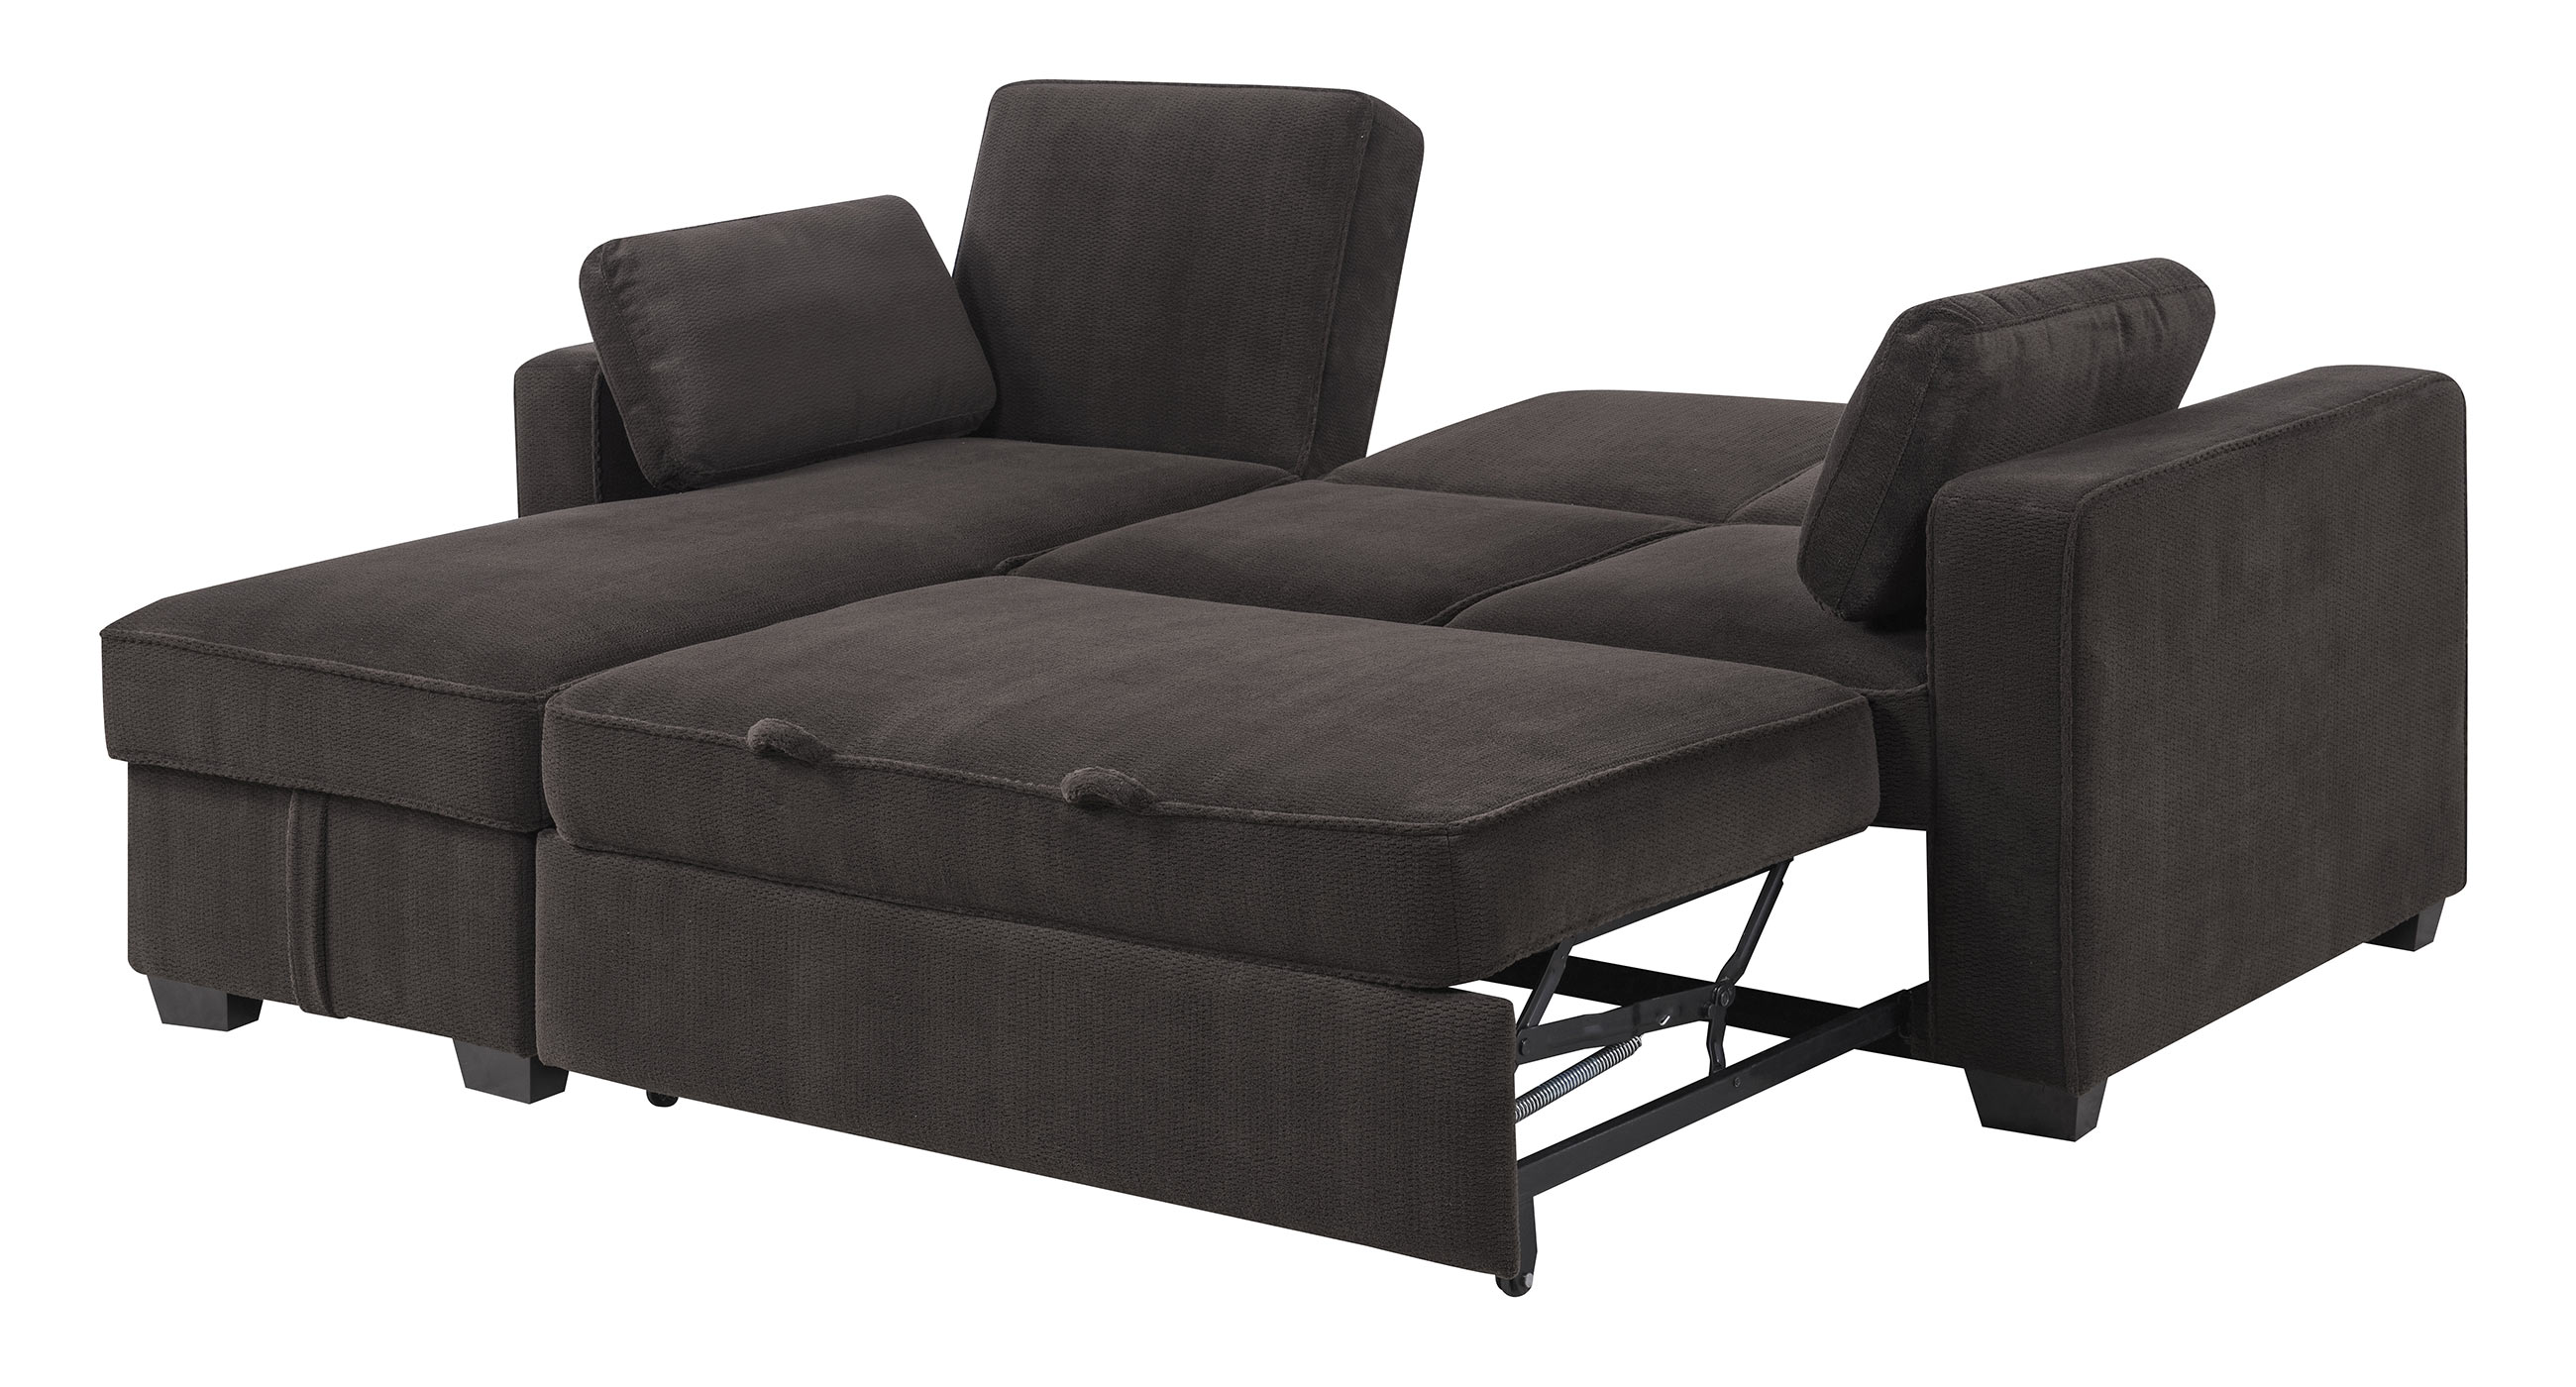 couch also convertible serta sectional as throughout sofa bed instructions meredith macys futon leather well